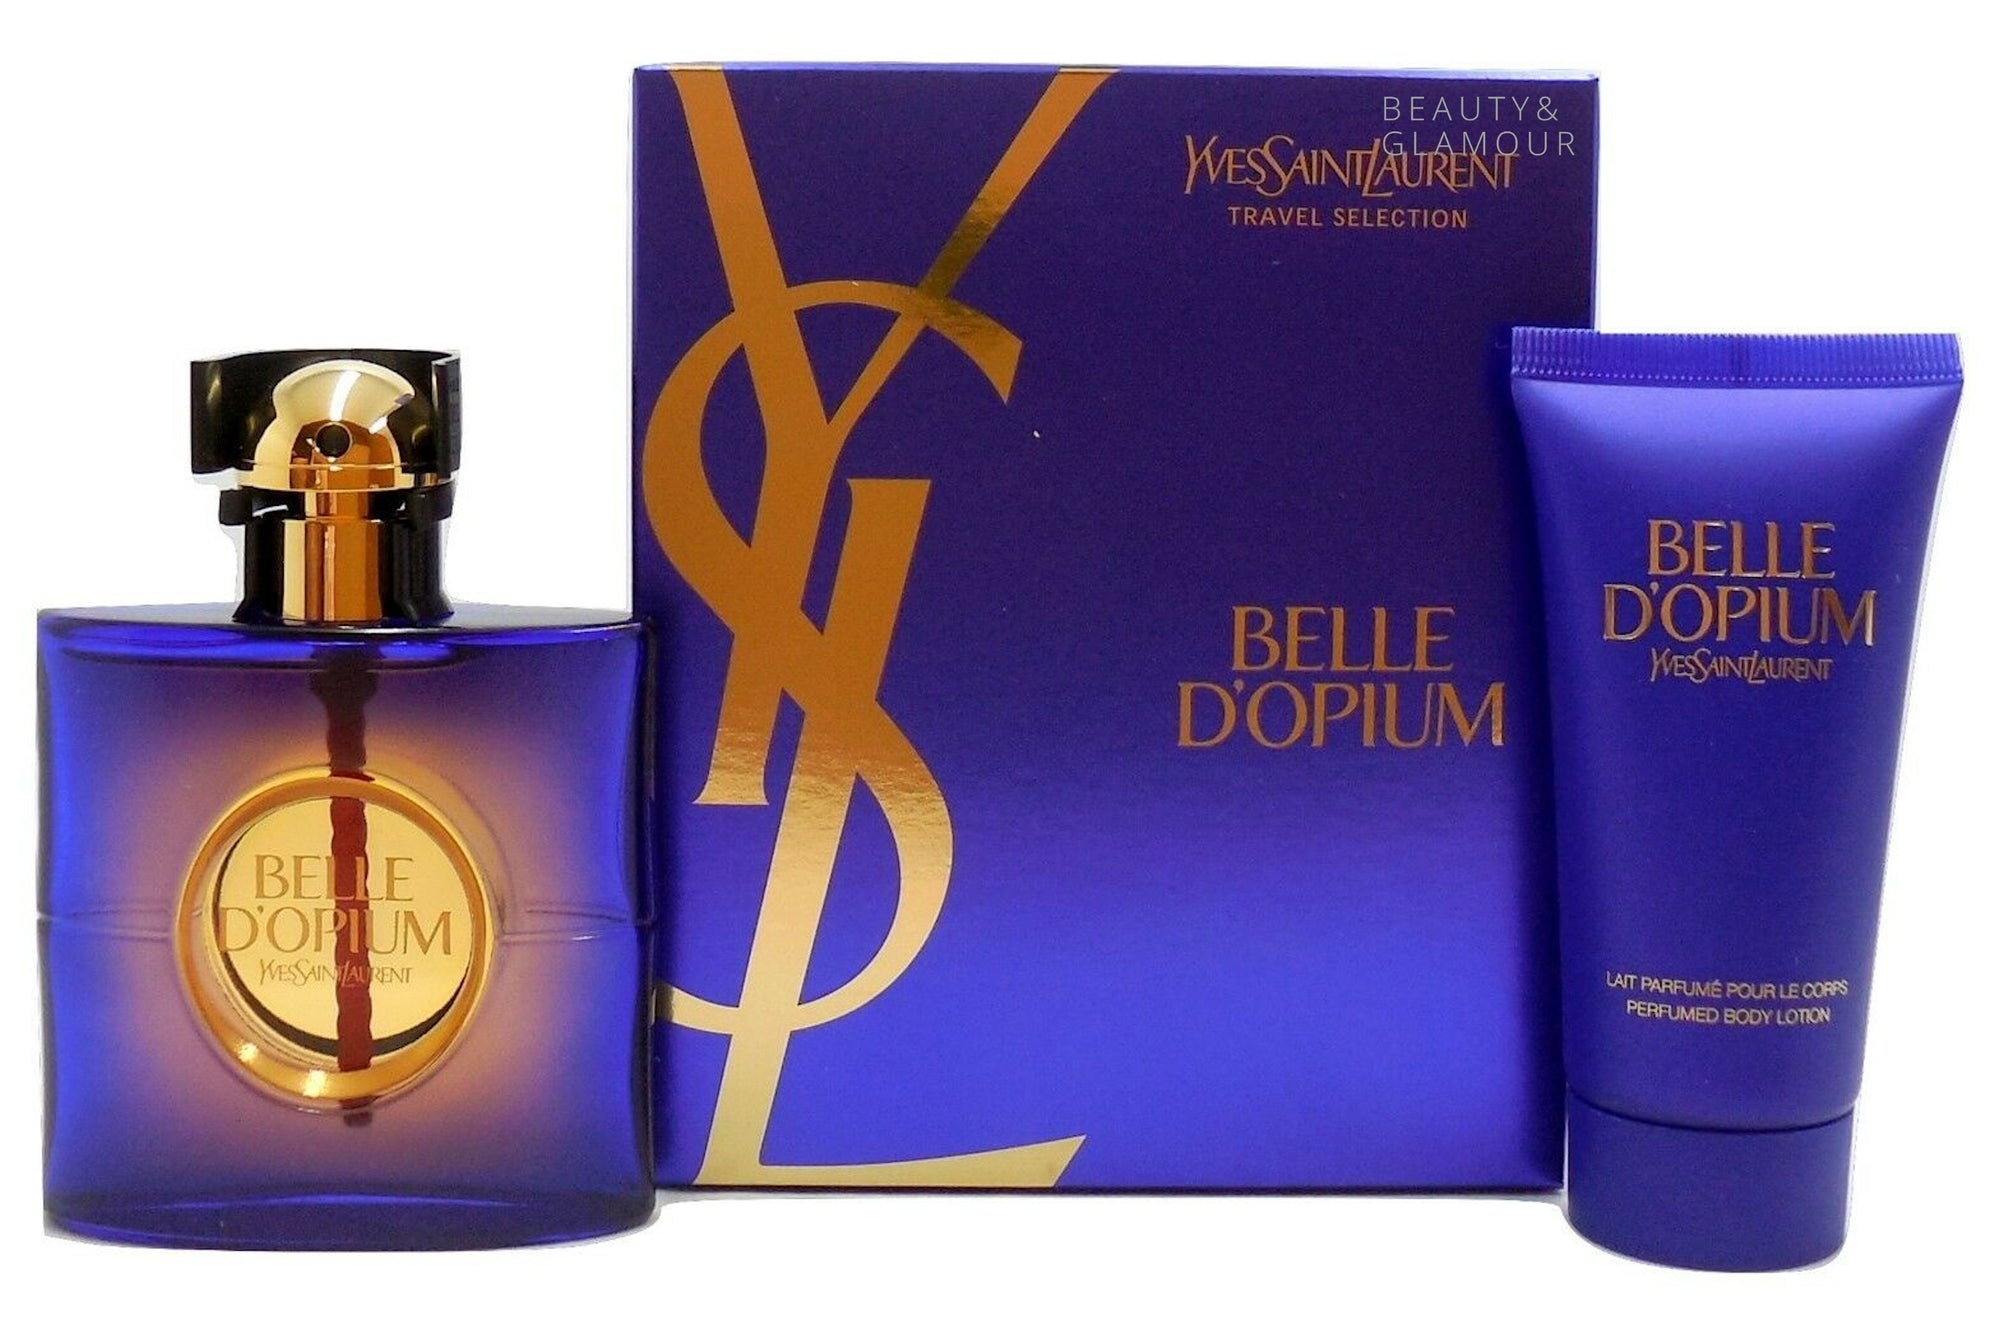 YVES SAINT LAURENT BELLE D'OPIUM EAU DE PARFUM SPRAY 50 ML/1.7 FL.OZ.